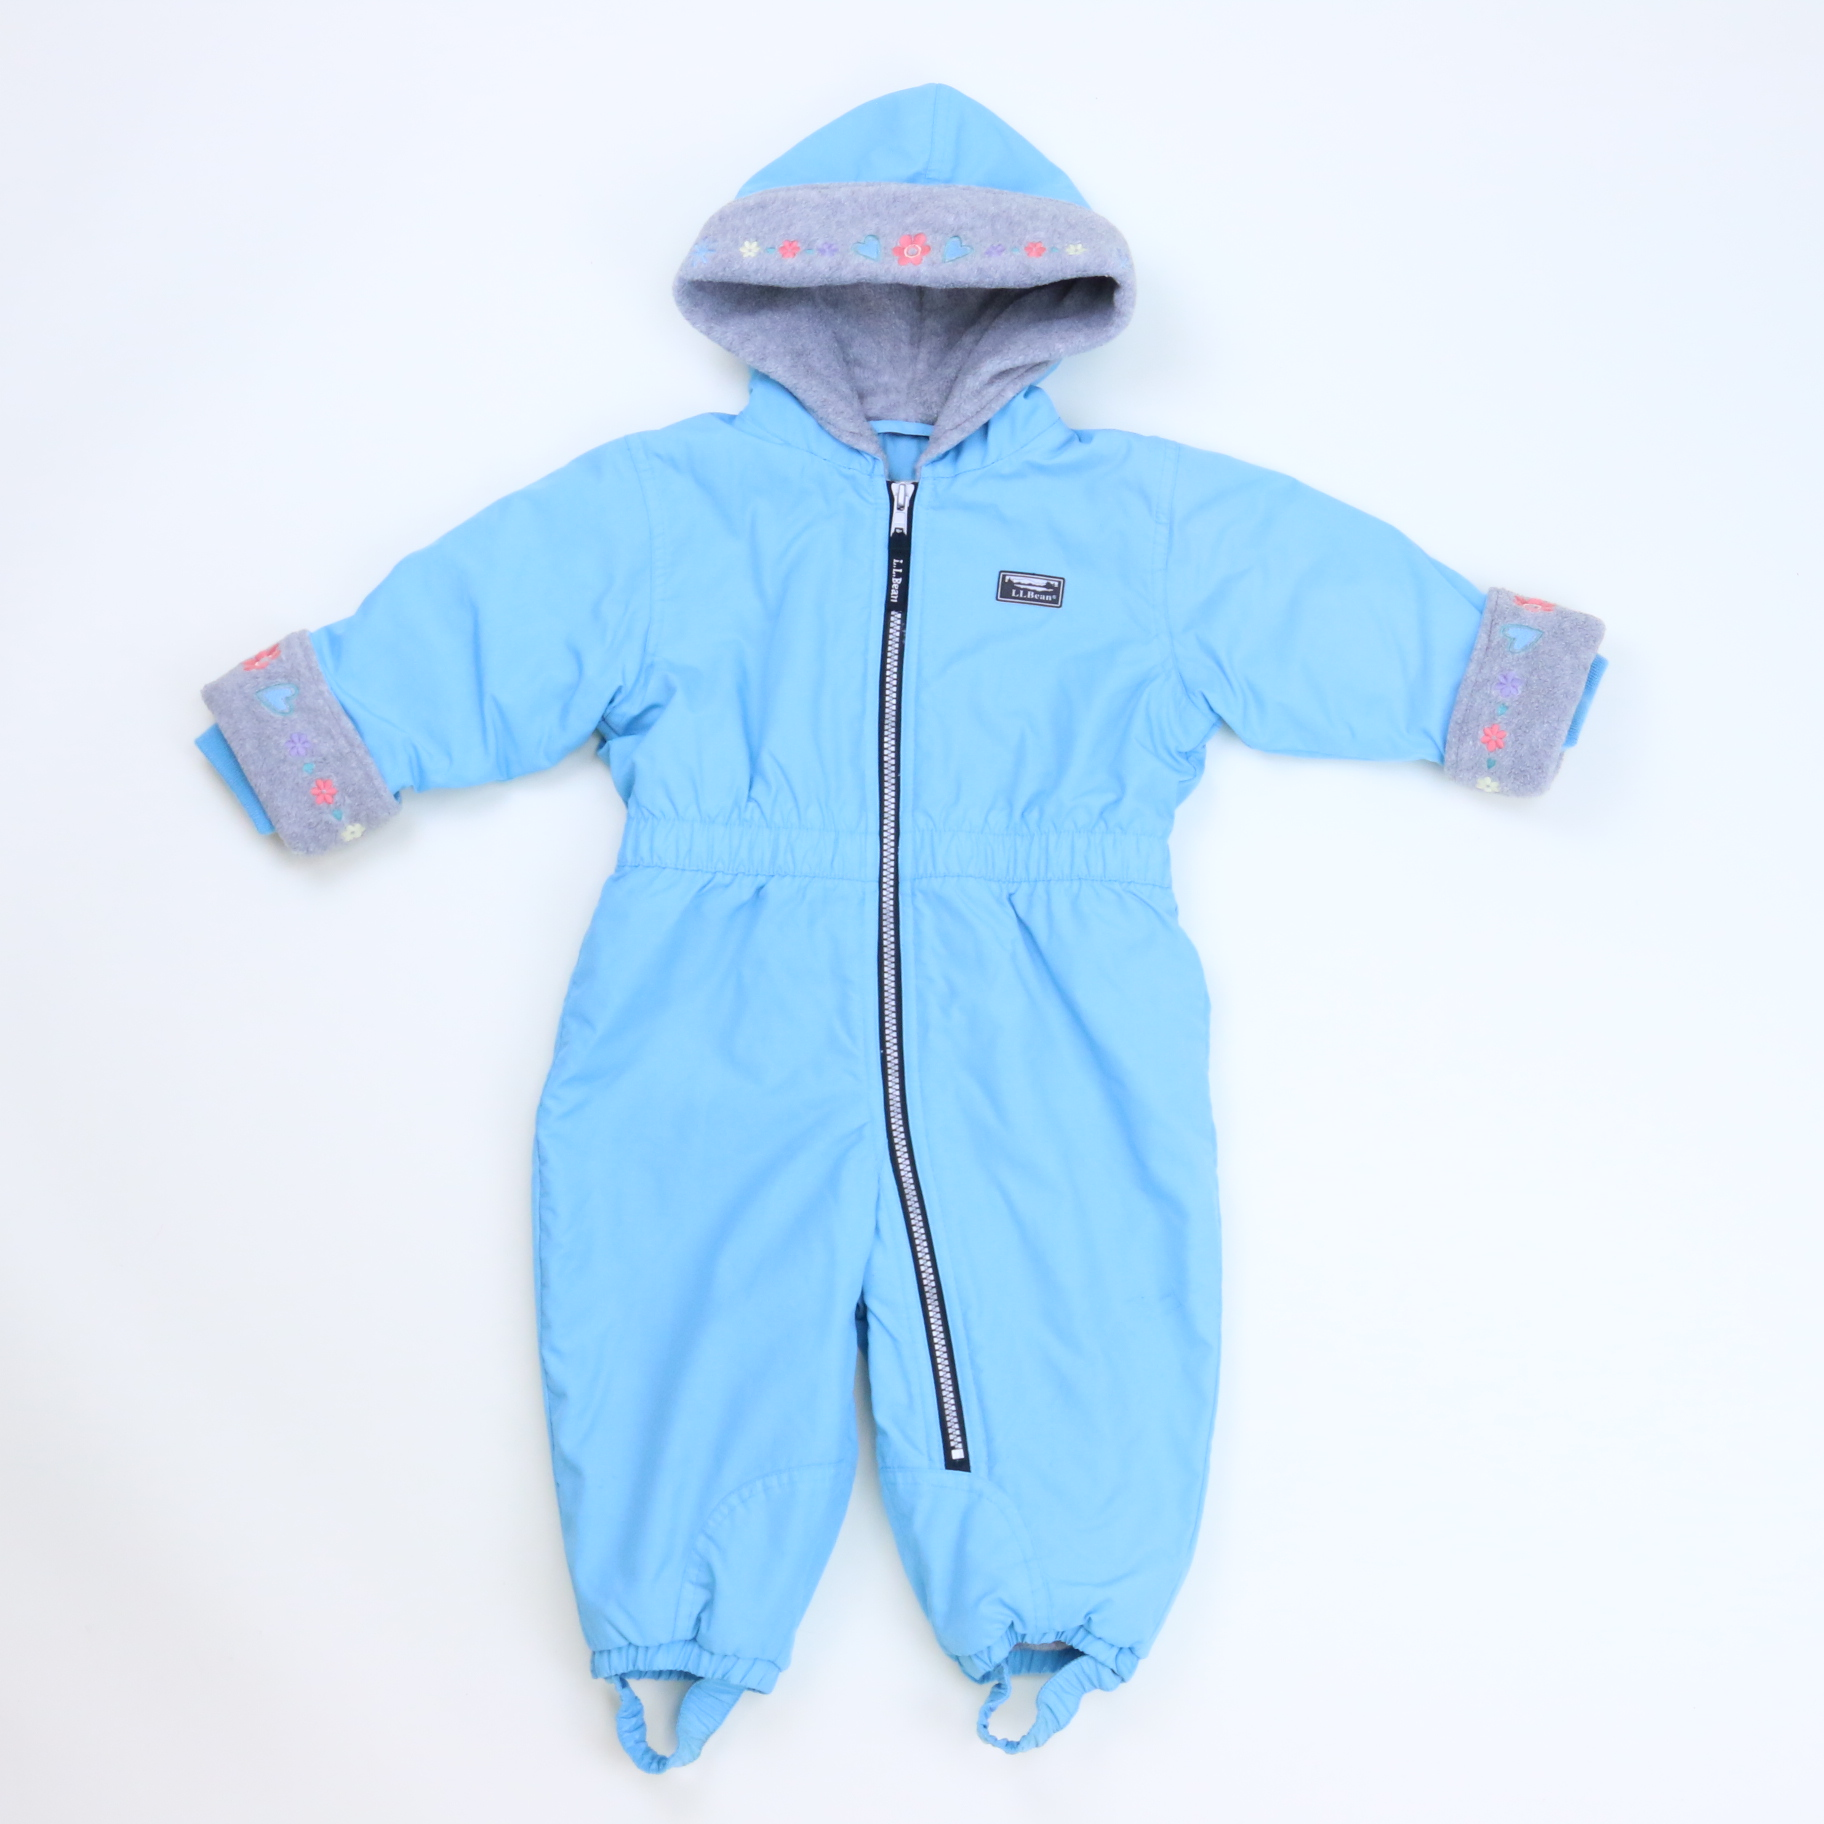 440122e06 Snowsuit size: 18 Months - The Swoondle Society